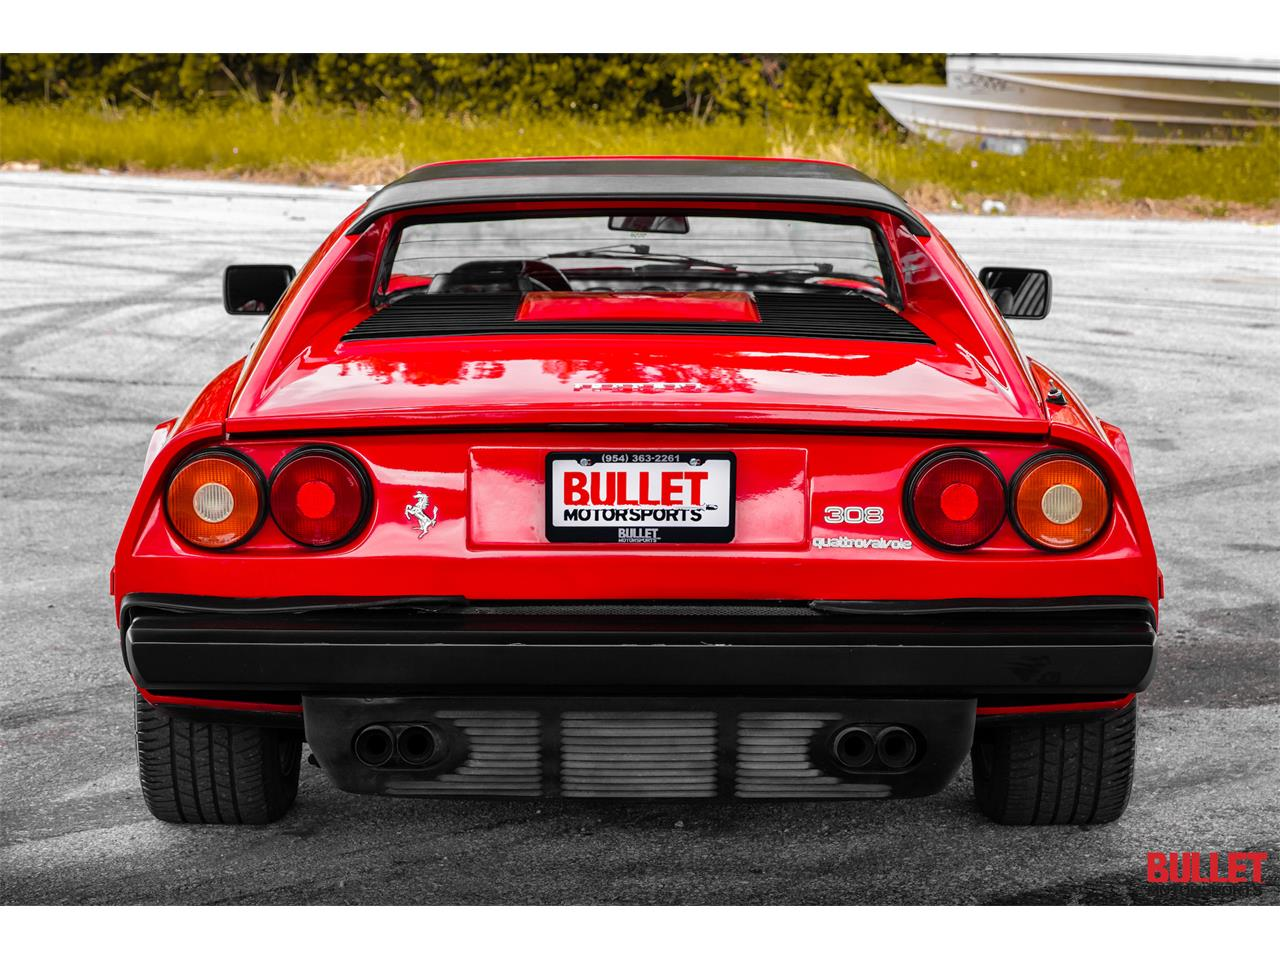 Large Picture of '85 Ferrari 308 GTS located in Fort Lauderdale Florida - $60,000.00 - QJ3G